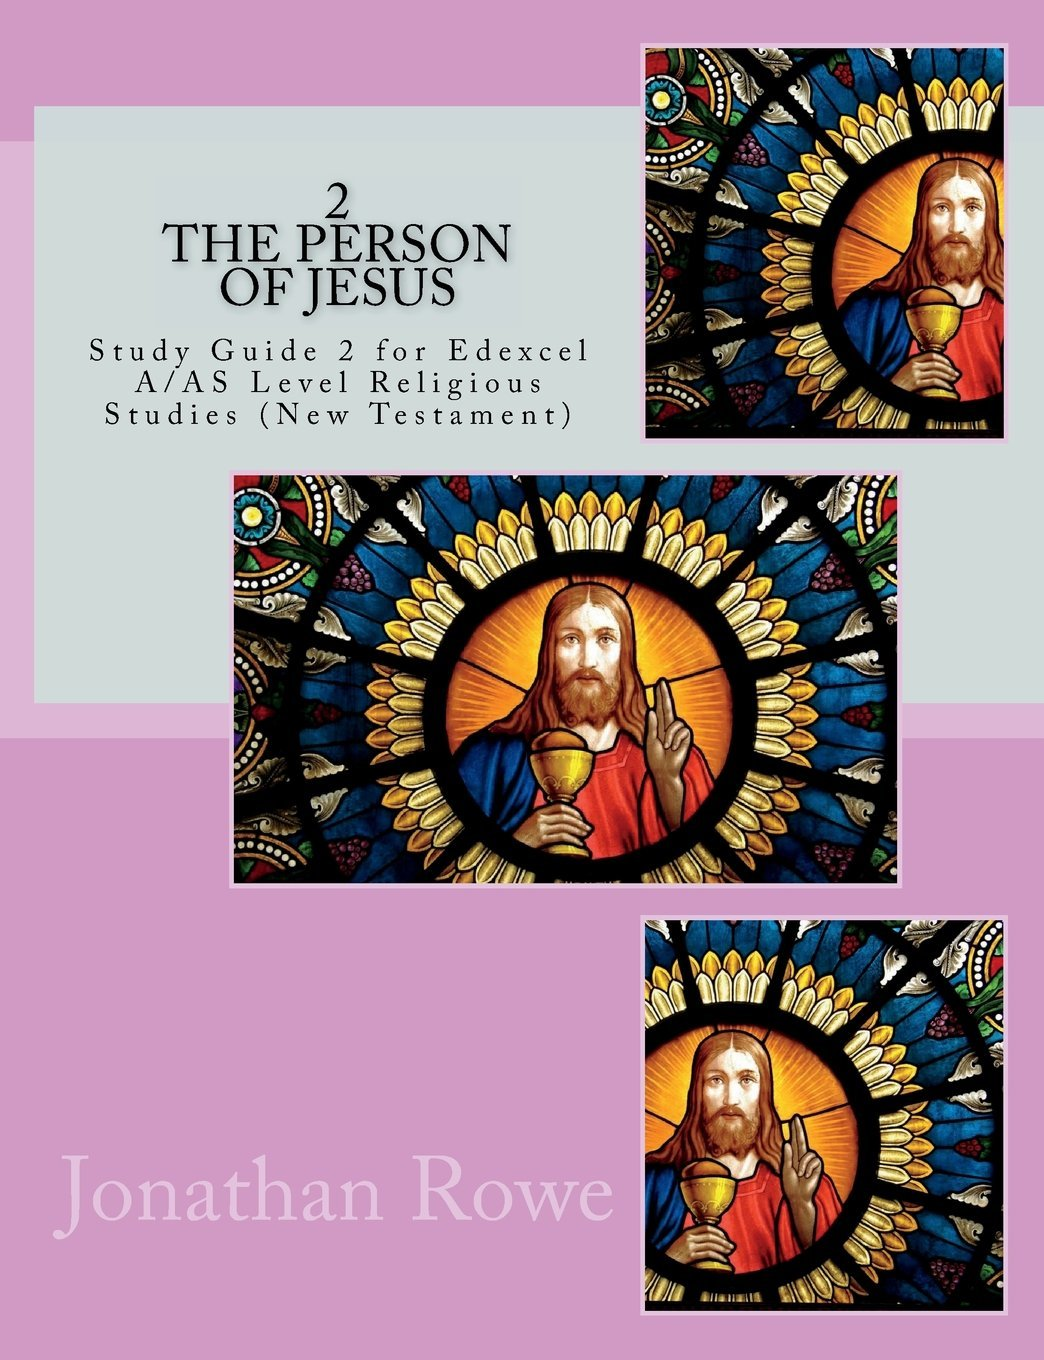 The Person of Jesus: Study Guide for Edexcel A/AS Level Religious Studies (New Testament) (New Testament Studies) (Volume 2) ebook